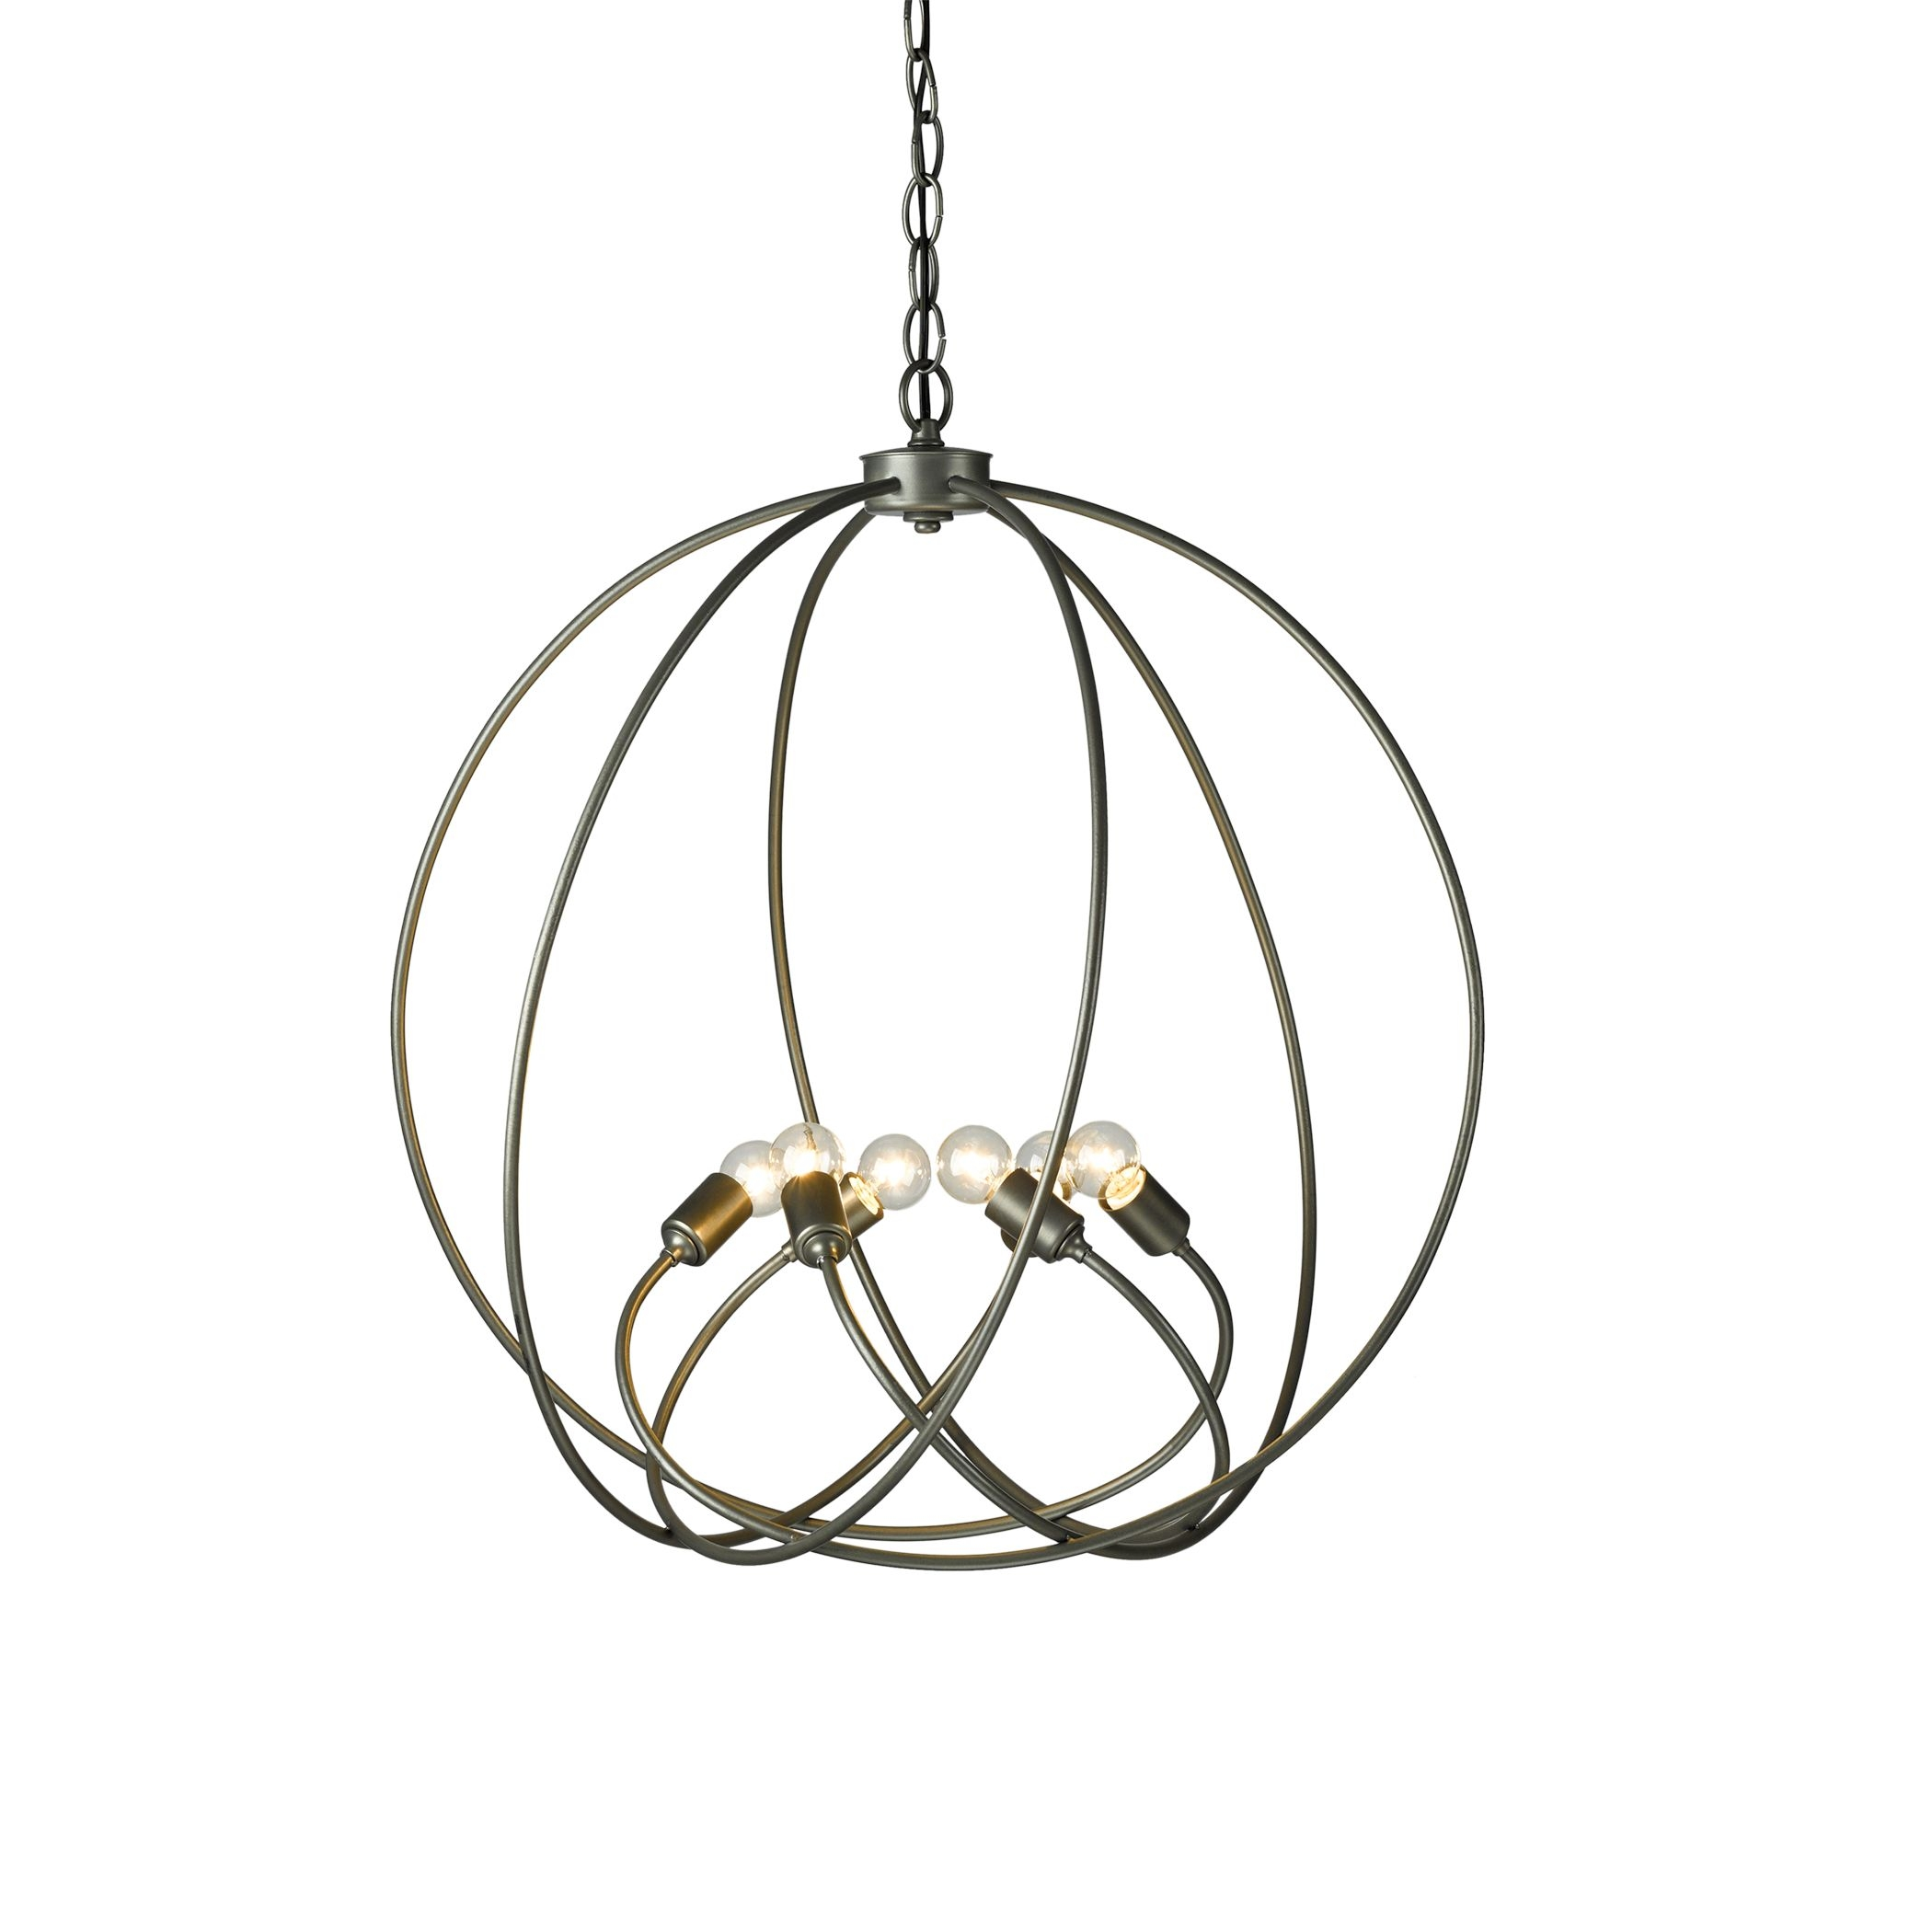 Orb Chandelier Hubbardton Forge Pertaining To Orb Chandelier (Image 14 of 15)